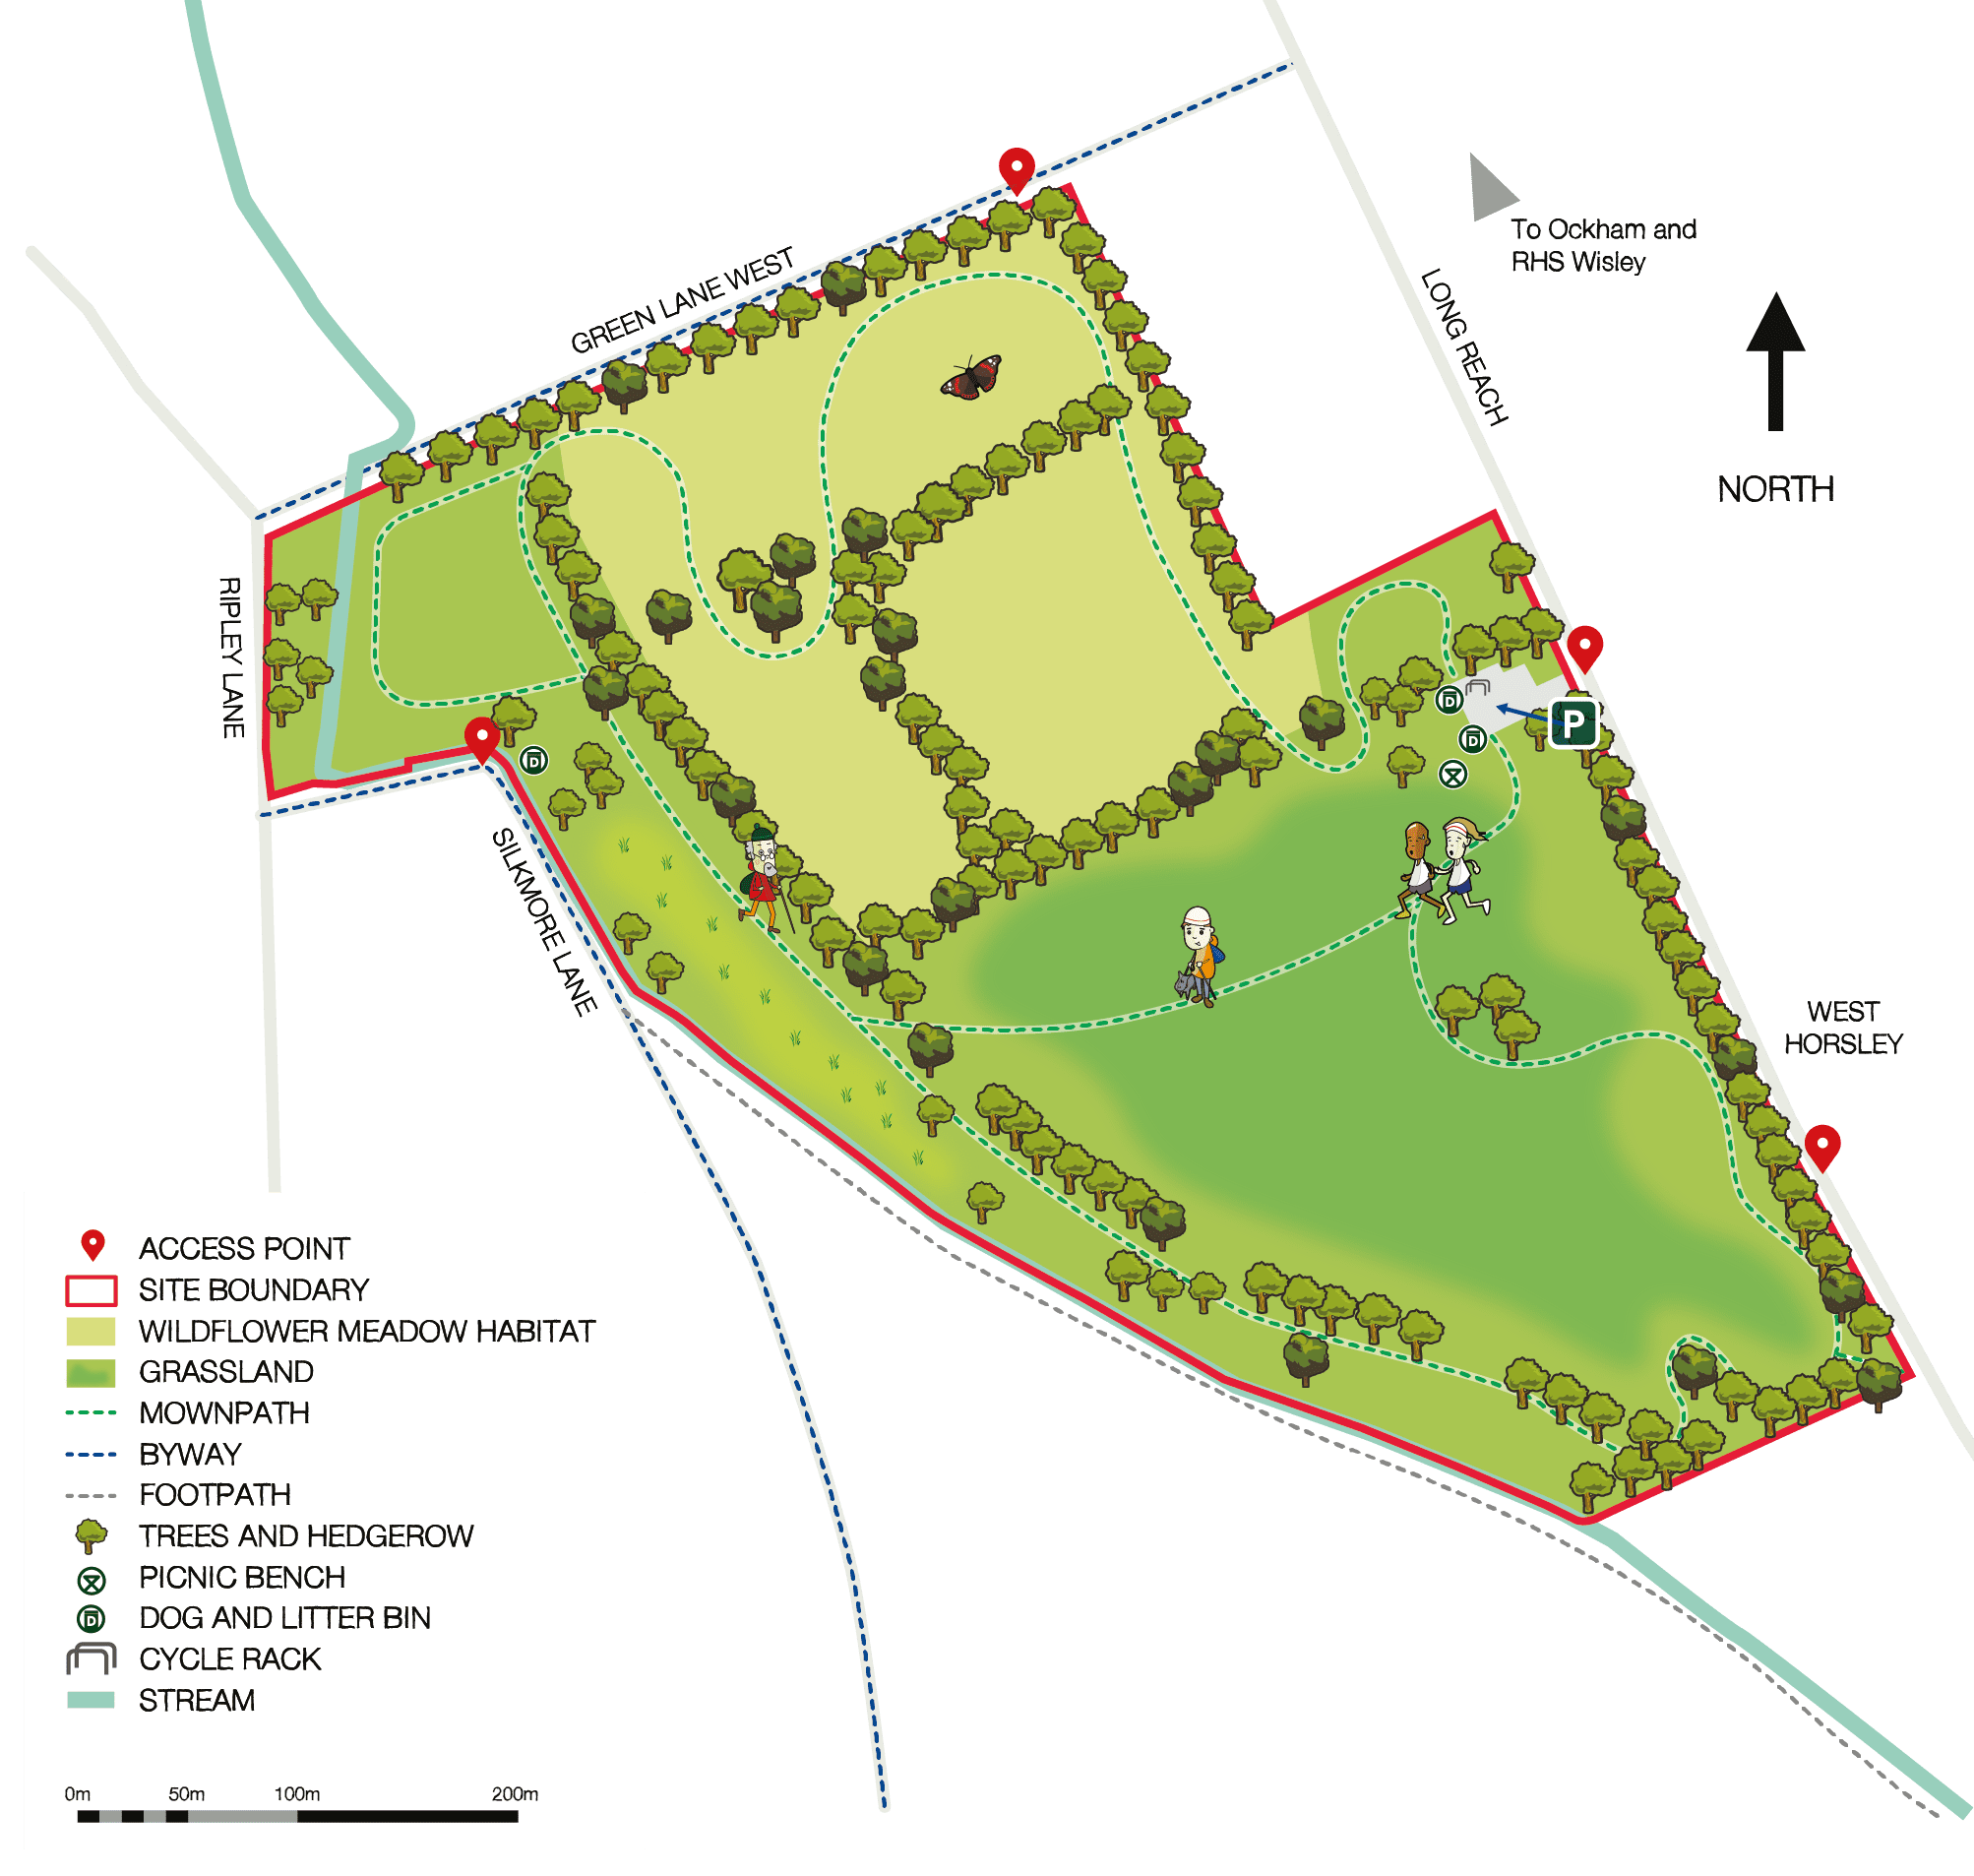 Map of Horsley Meadows